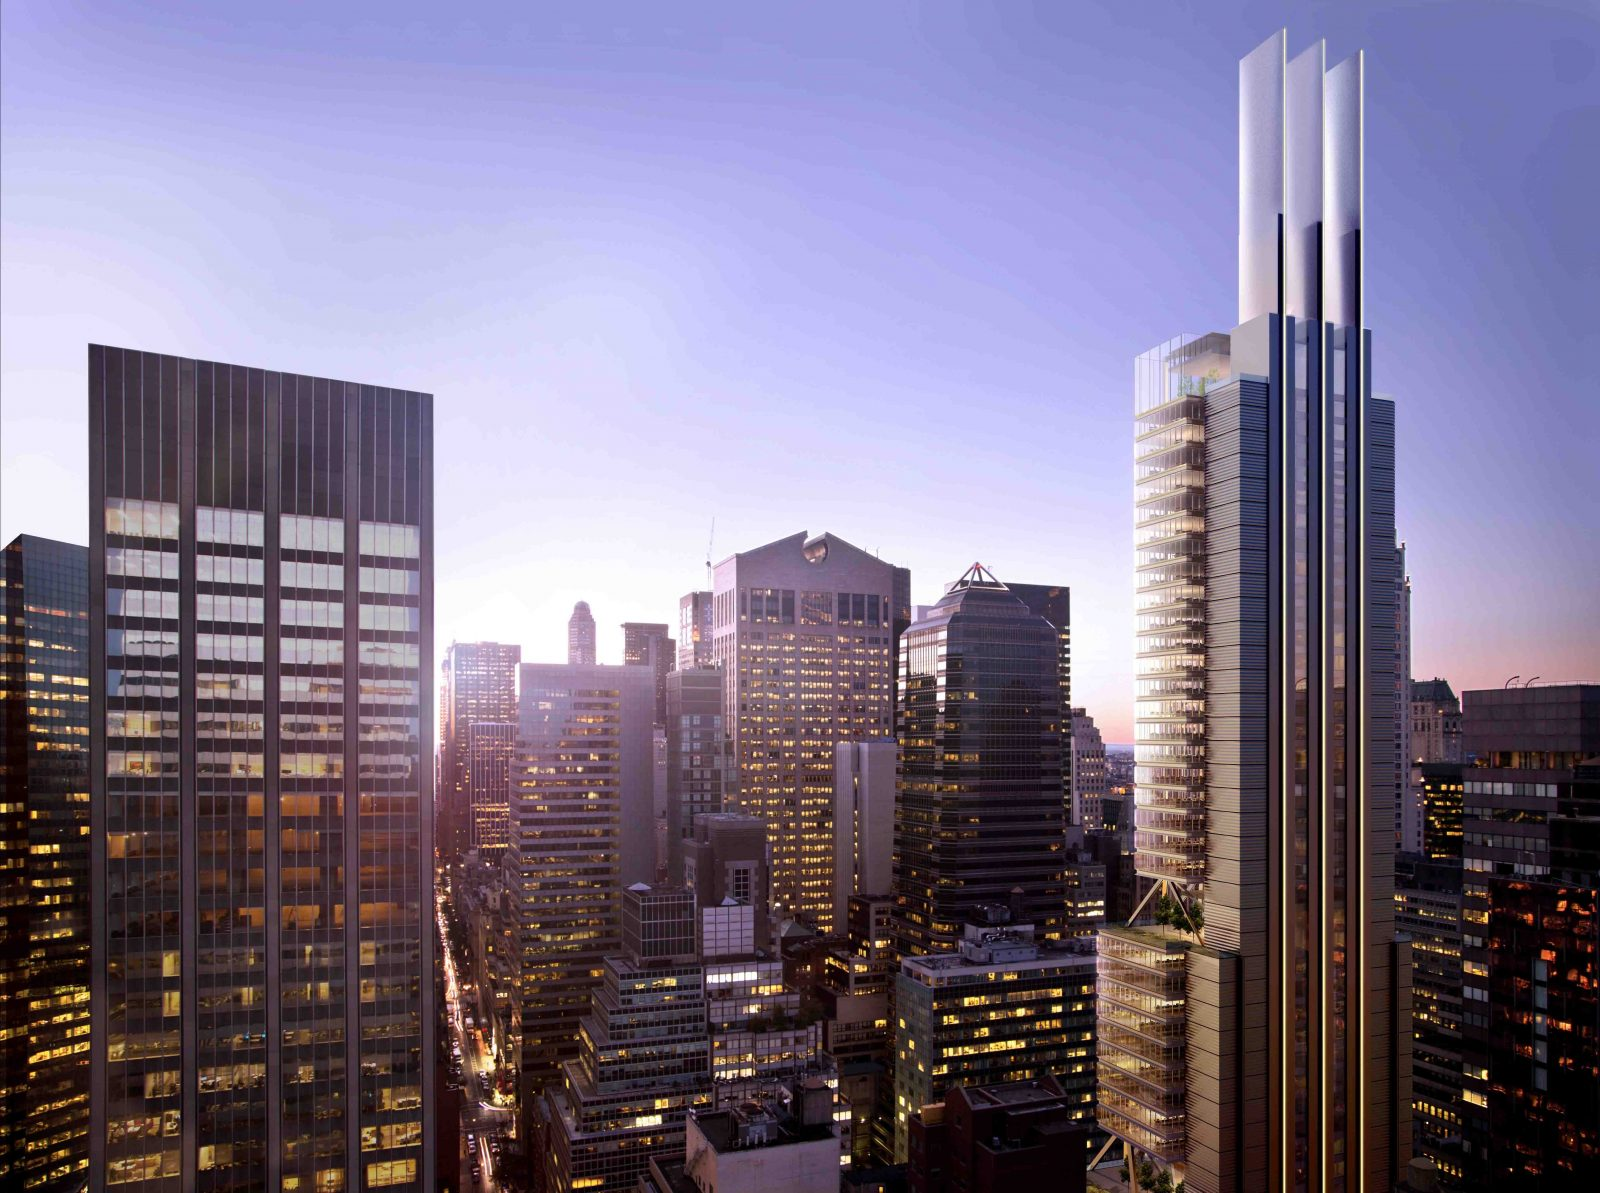 Construction Update: The Foster + Partners Designed 425 Park Avenue Begins Vertical Rise